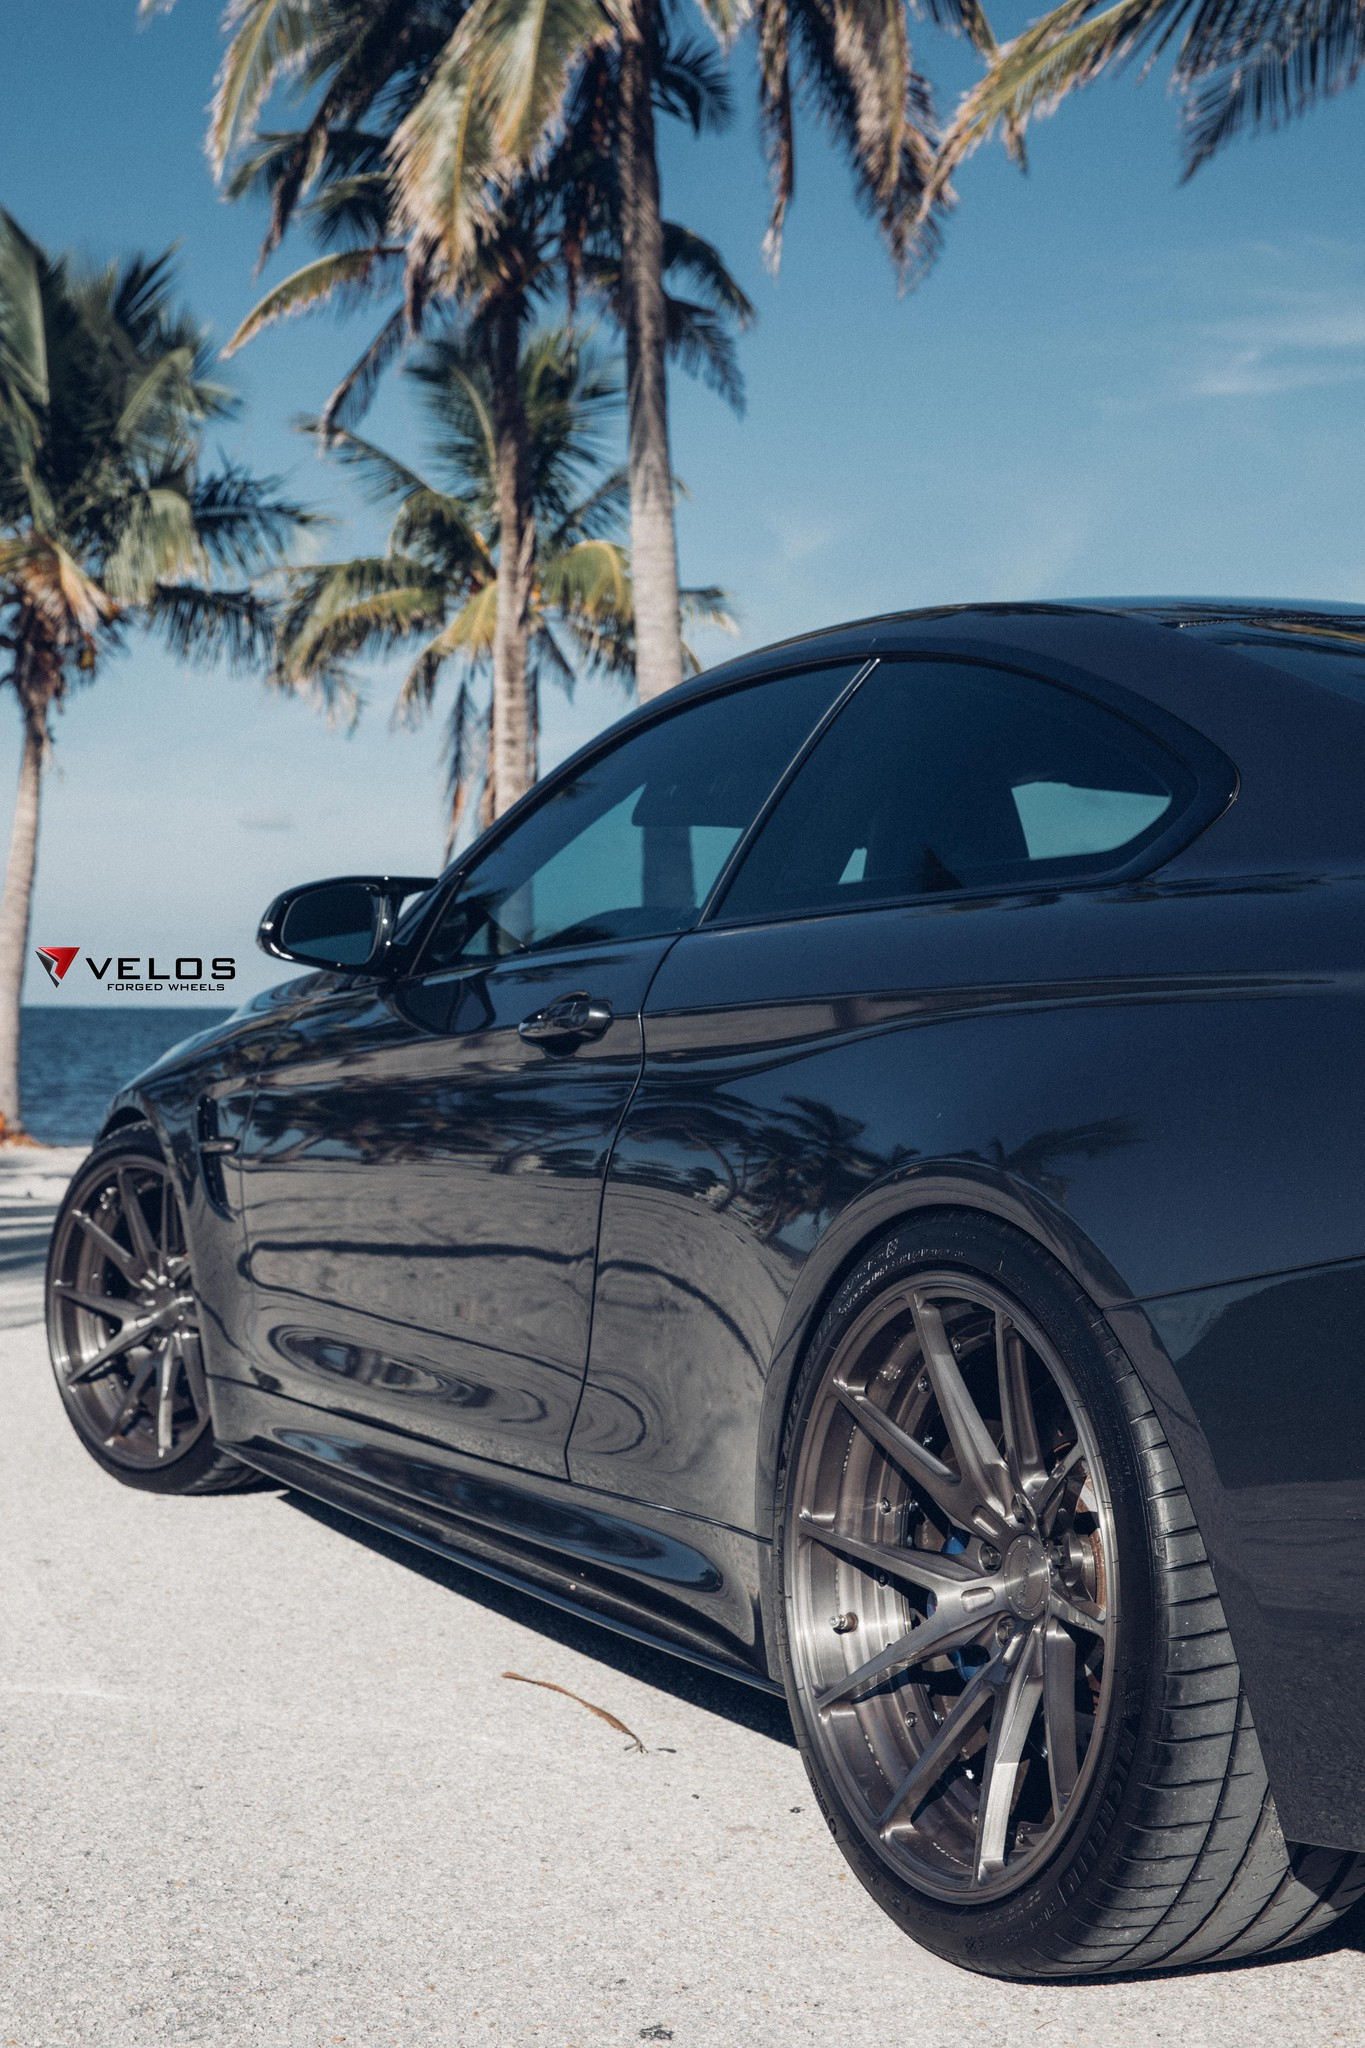 BMW M4 F82 coupe on velos 01 wheels